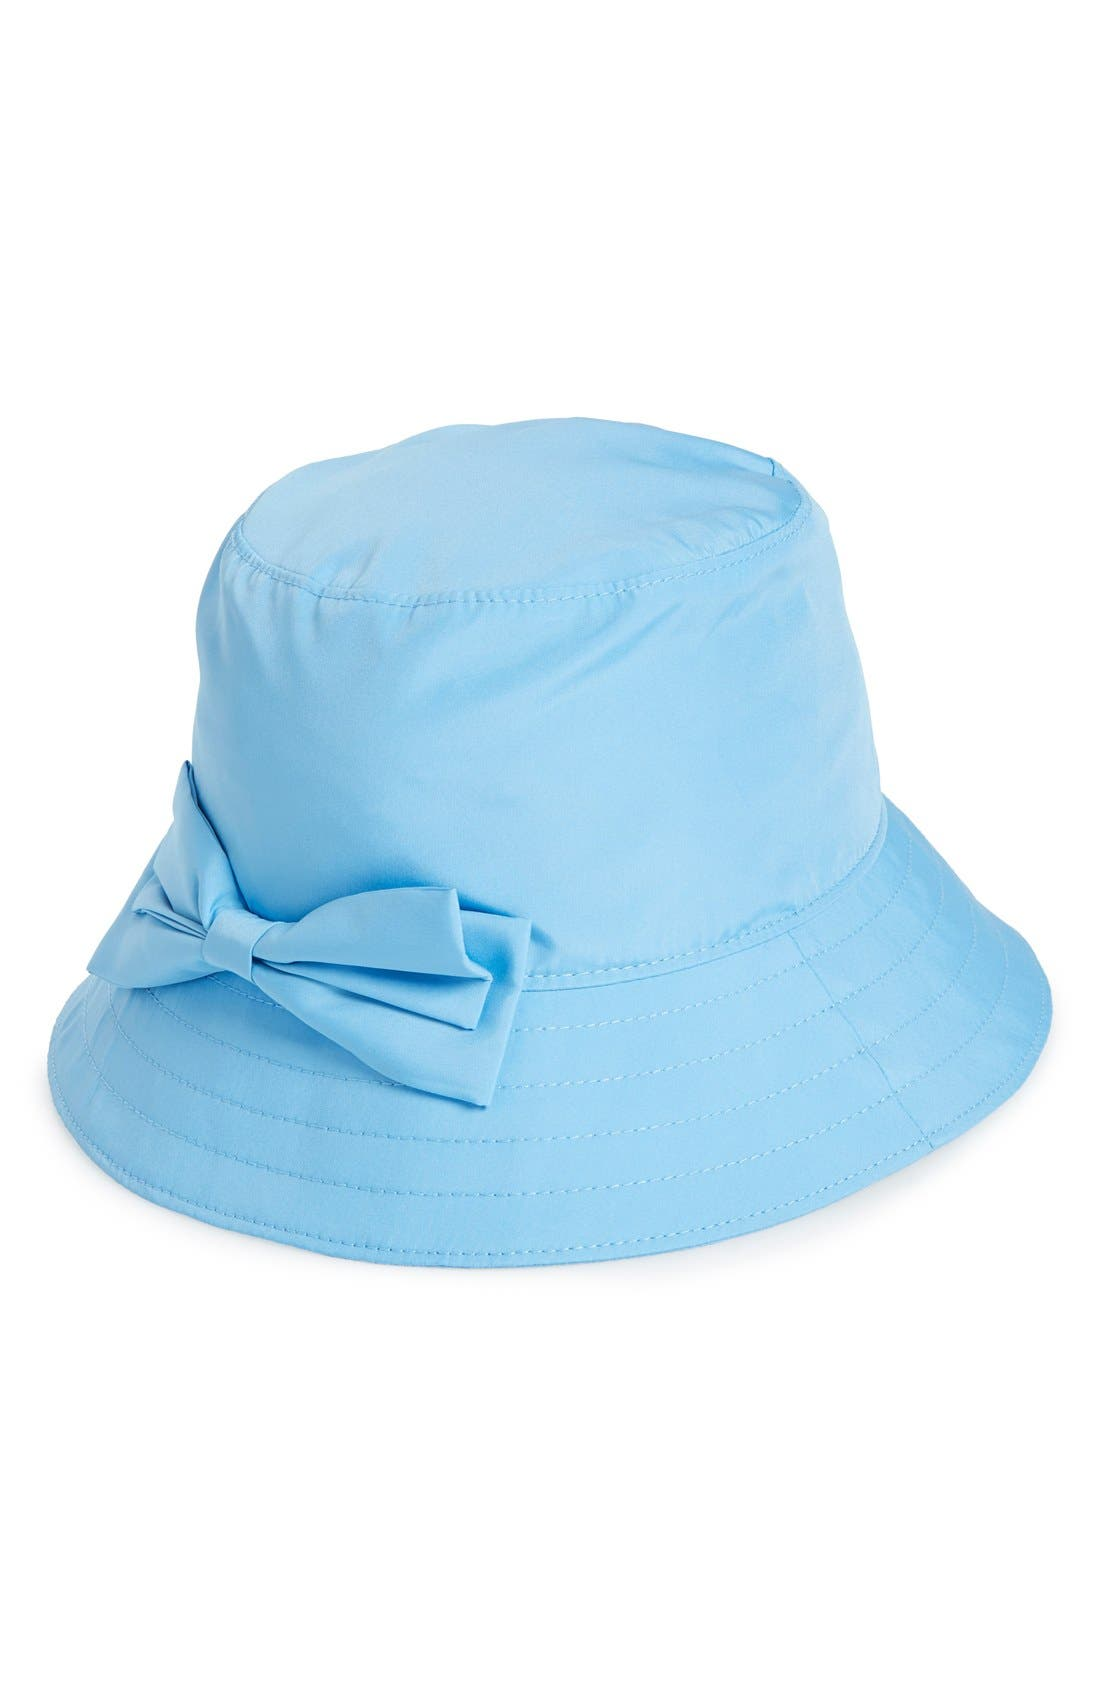 Alternate Image 1 Selected - kate spade new york rain bucket hat